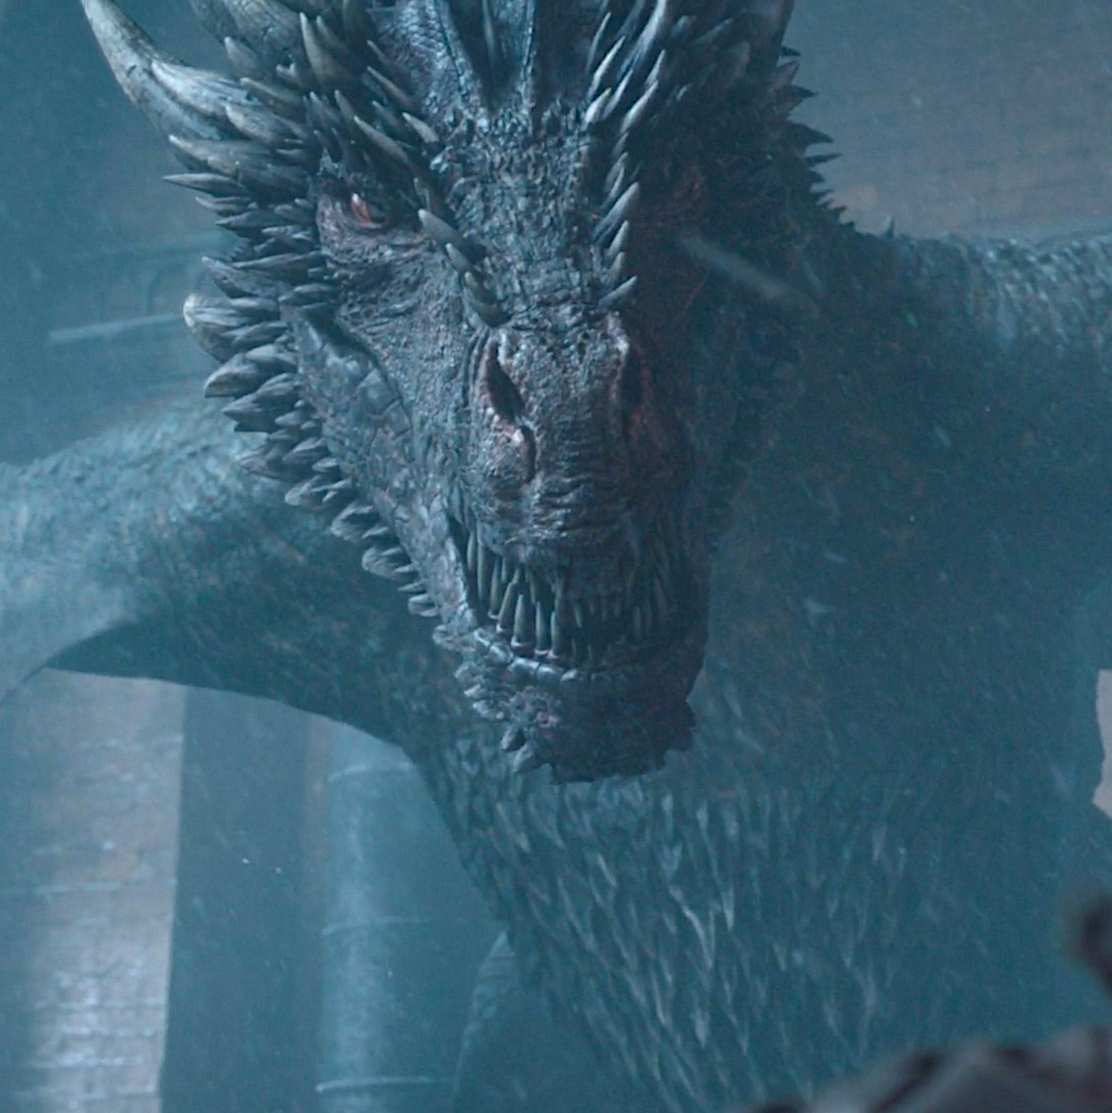 Here's Where Drogon Was Going With Daenerys at the End of Game of Thrones